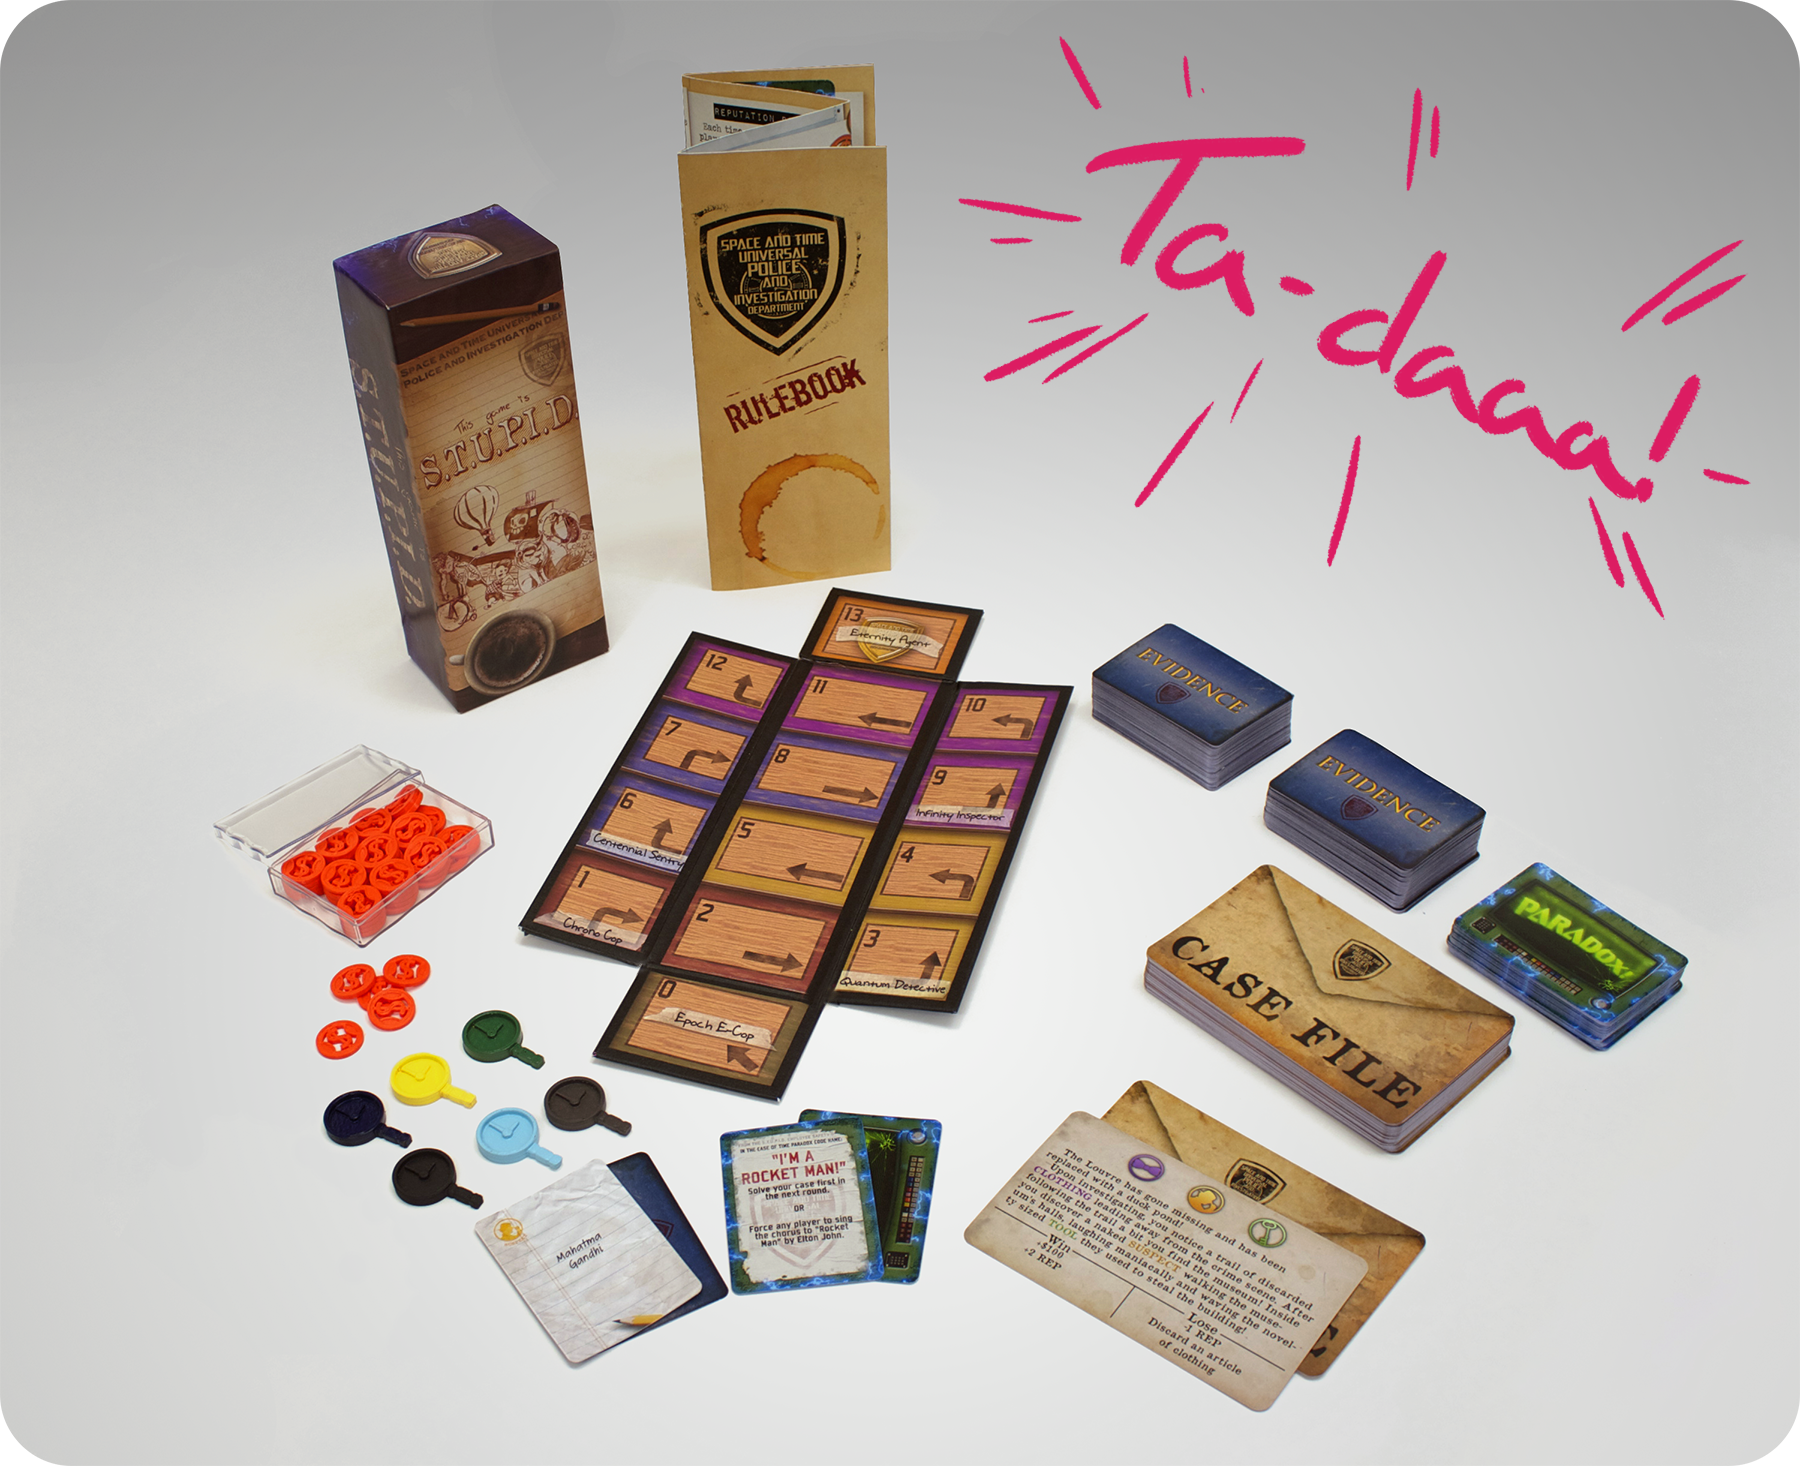 This was the base game, we had even constructed 3 additional decks based on Science Fiction, Fantasy, and Vulgar cards to sell as expansion sets.